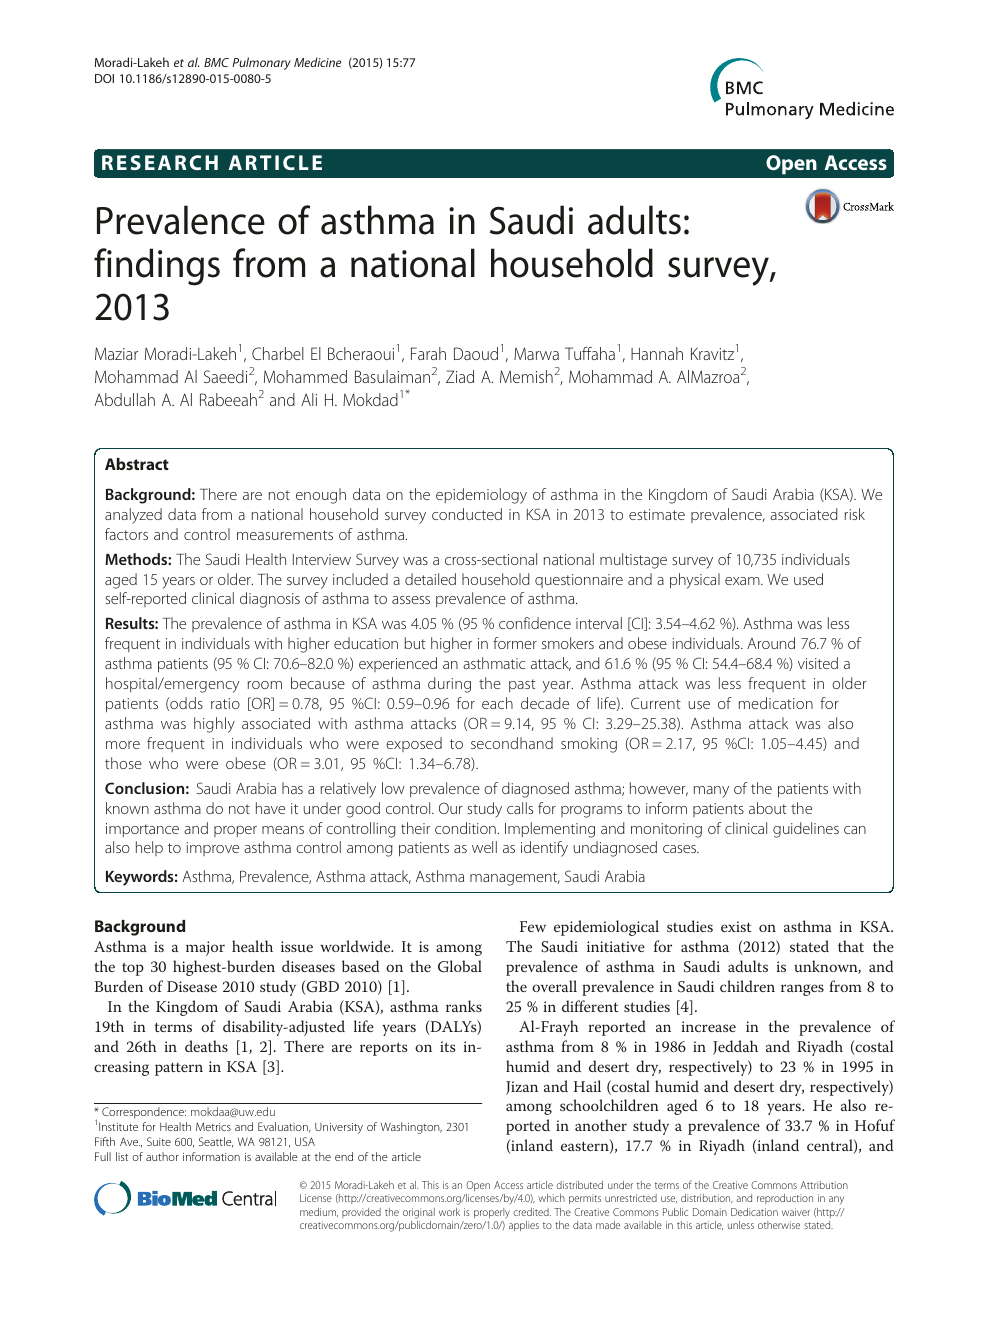 Prevalence of asthma in Saudi adults: findings from a national